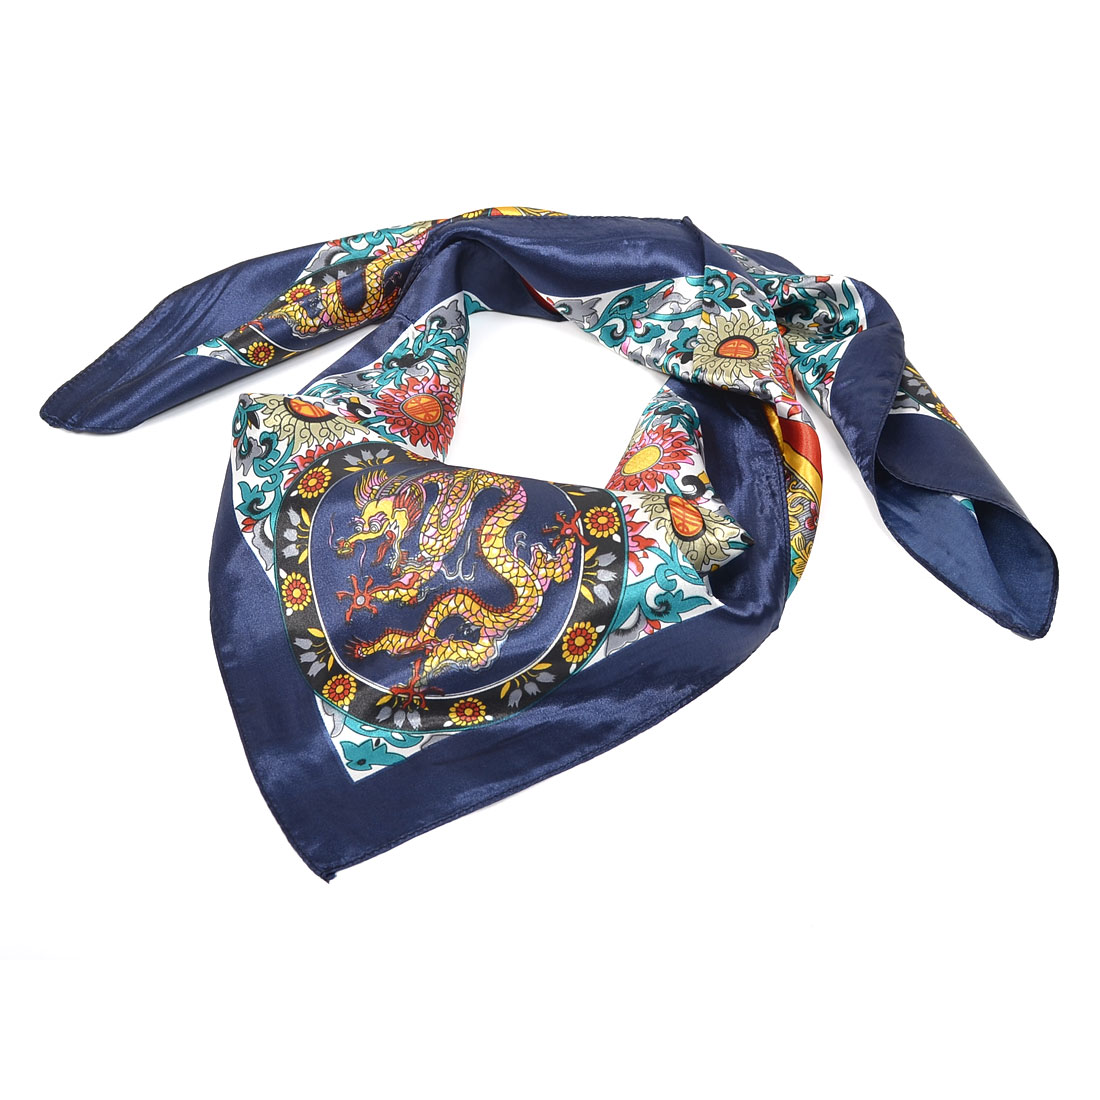 Women Dragon Pattern Square Neck Scarf Wrap Kerchief Scarves Dark Blue Yellow